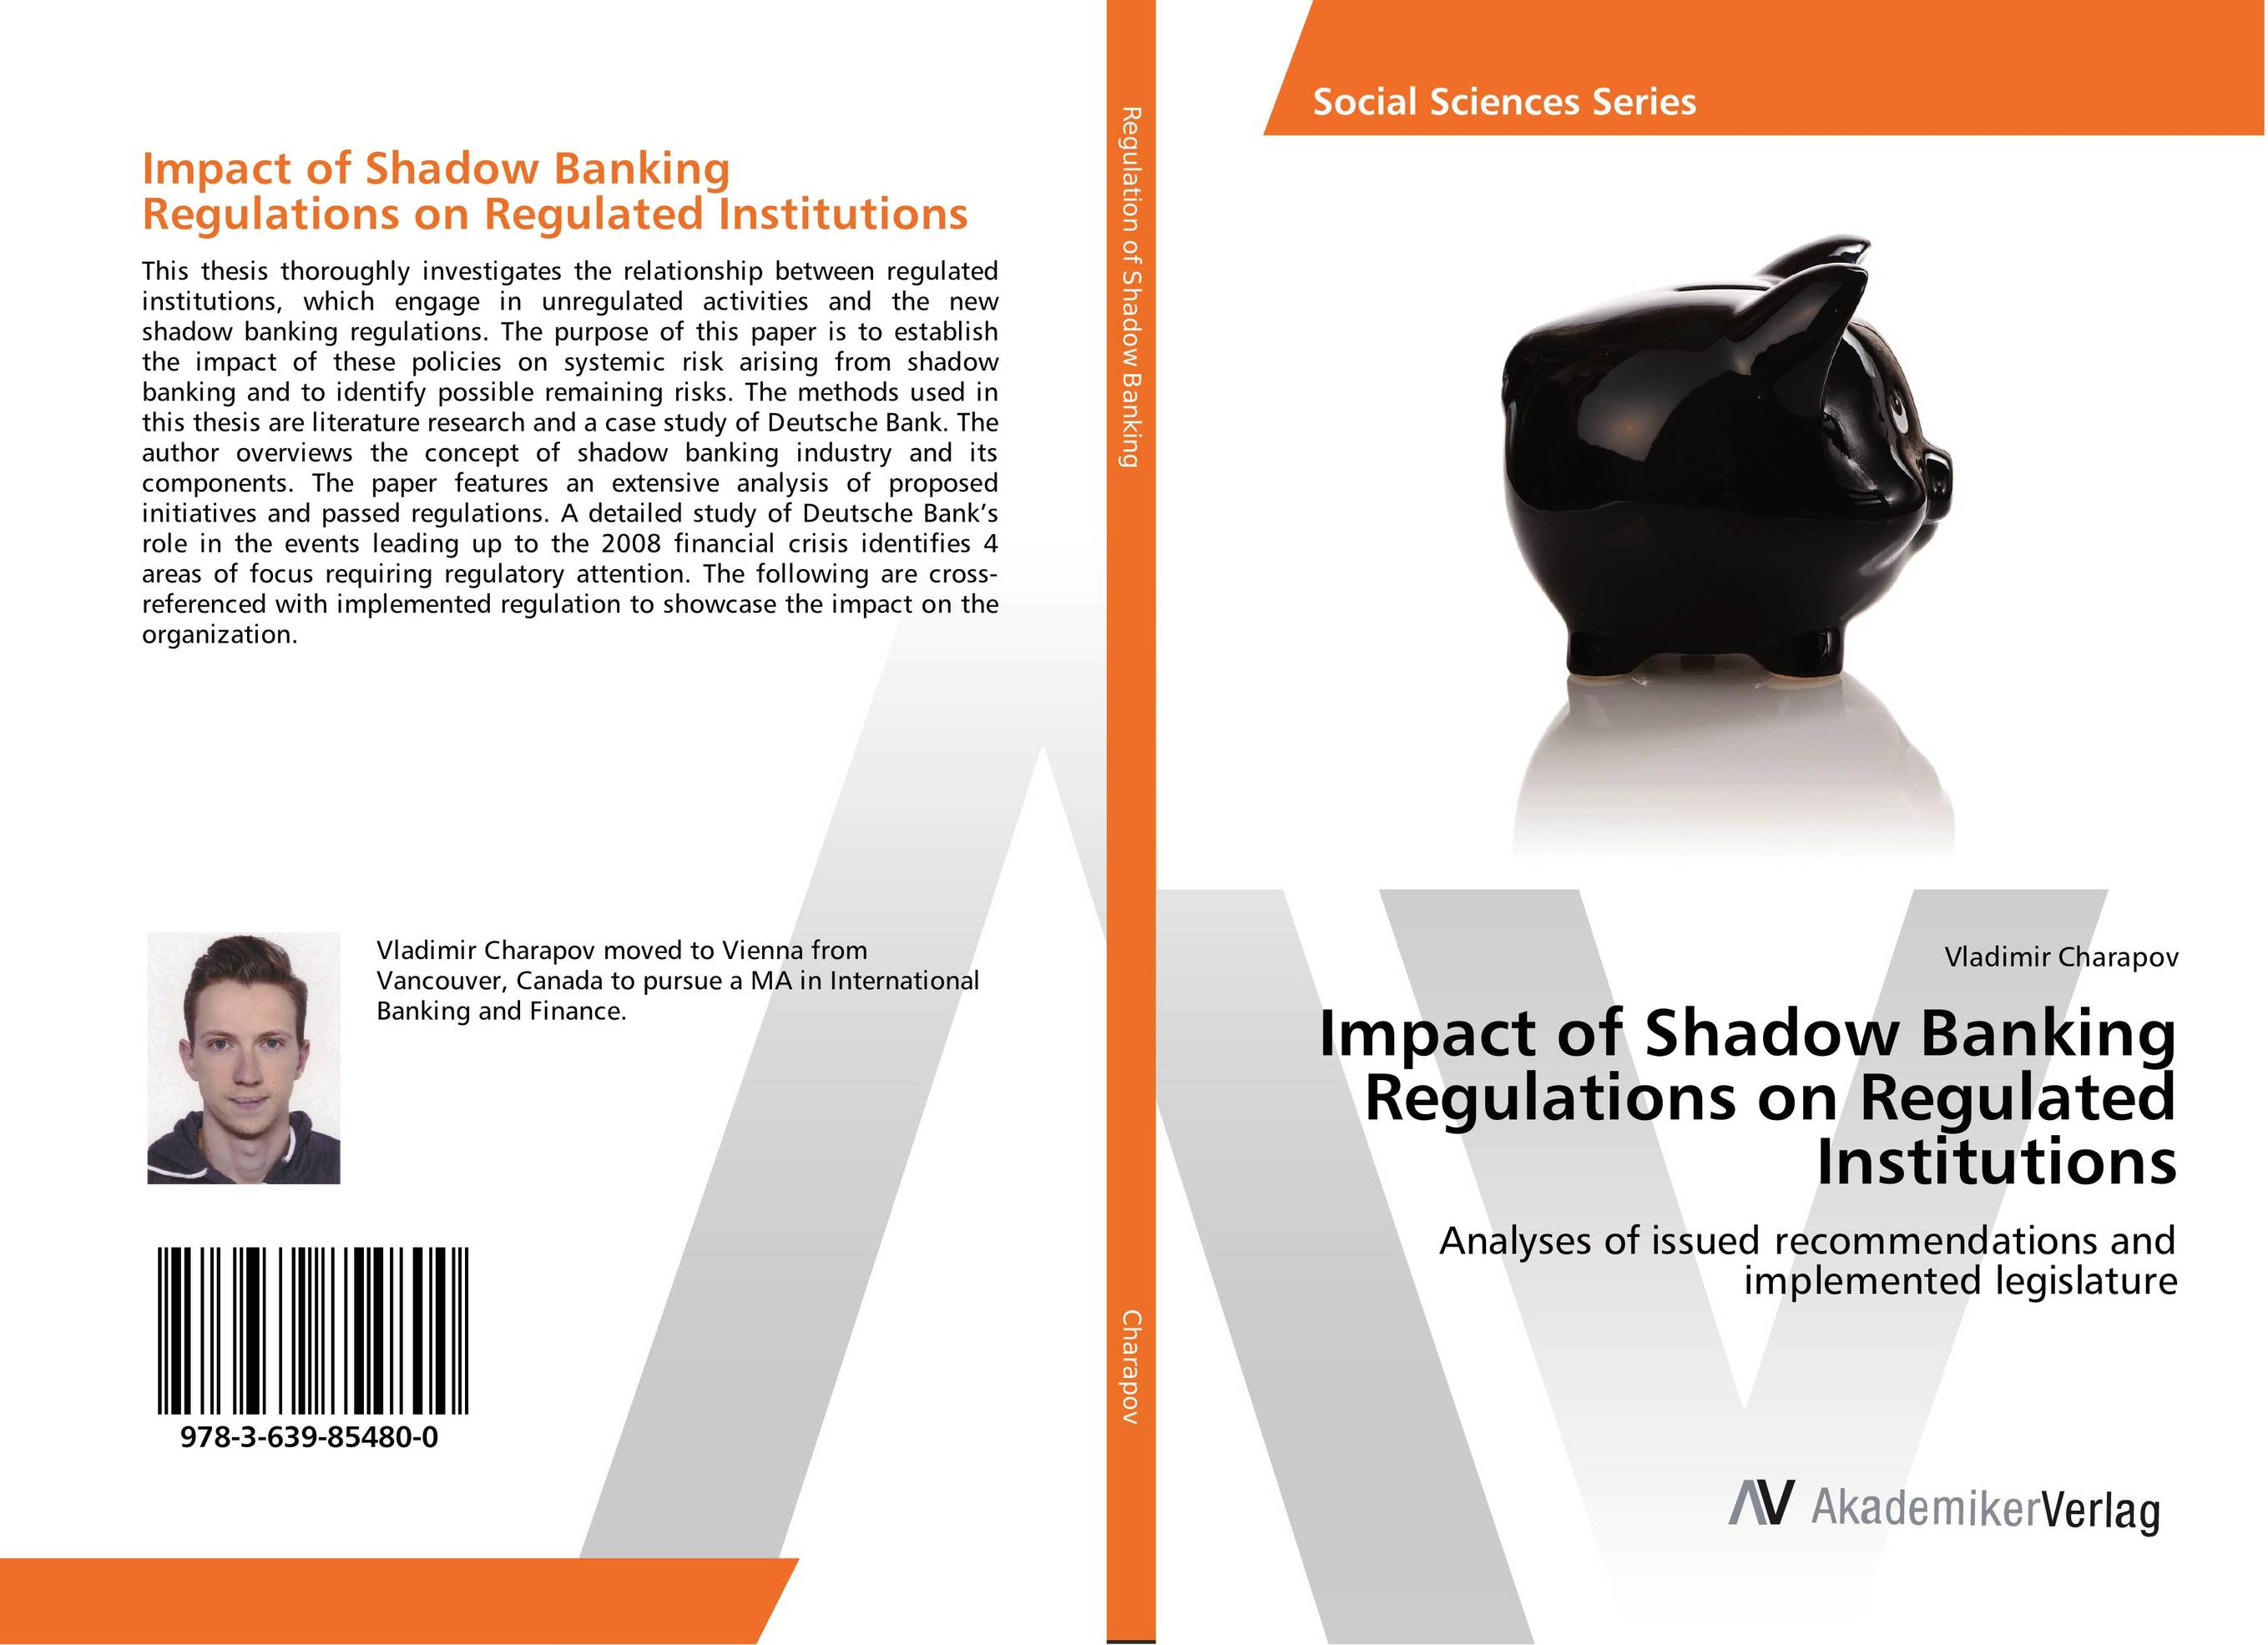 Impact of Shadow Banking Regulations on Regulated Institutions